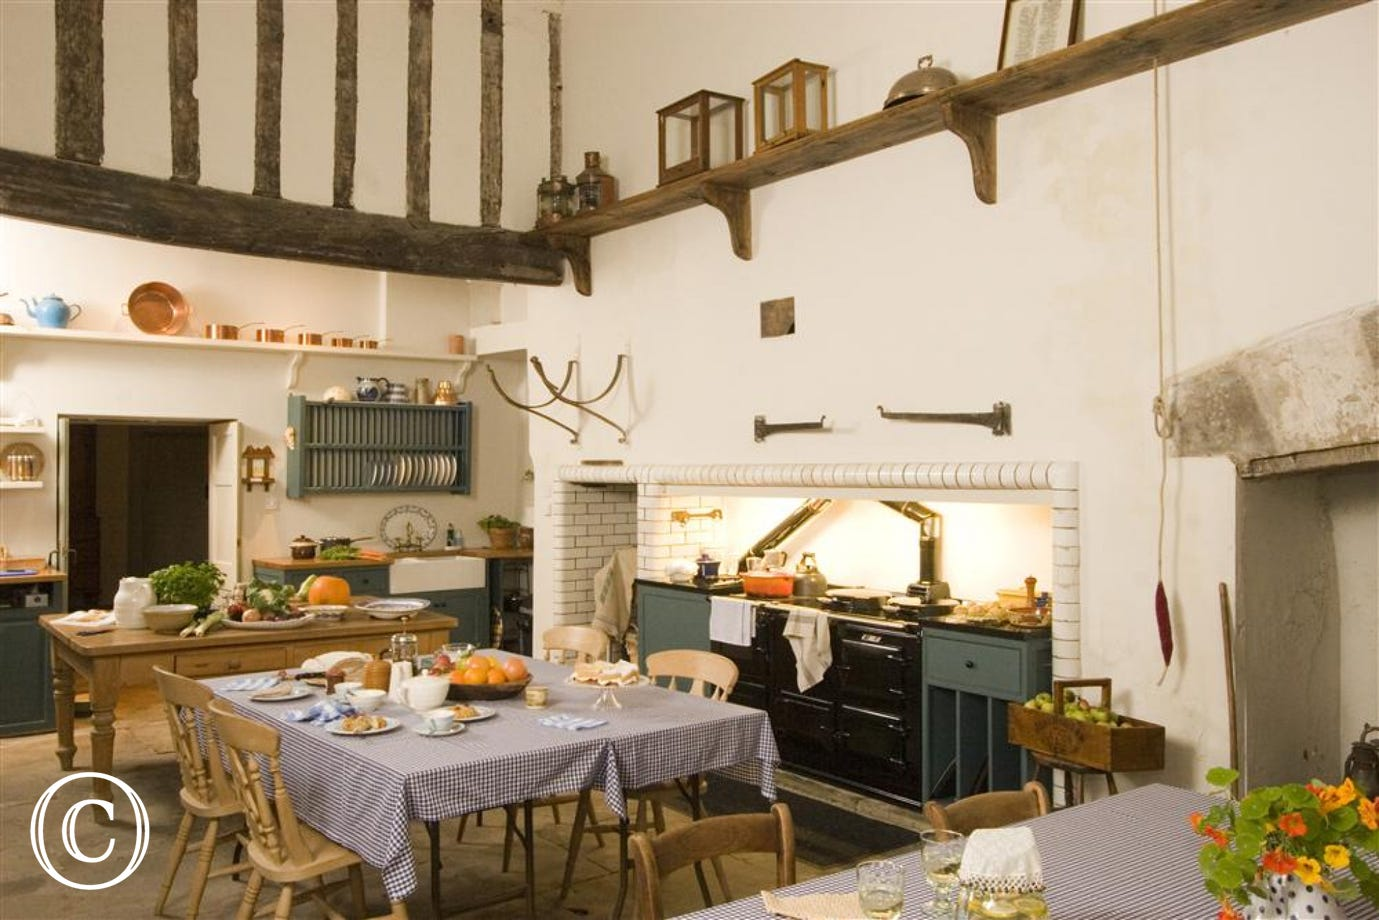 The amazing Tudor Kitchen with original beams